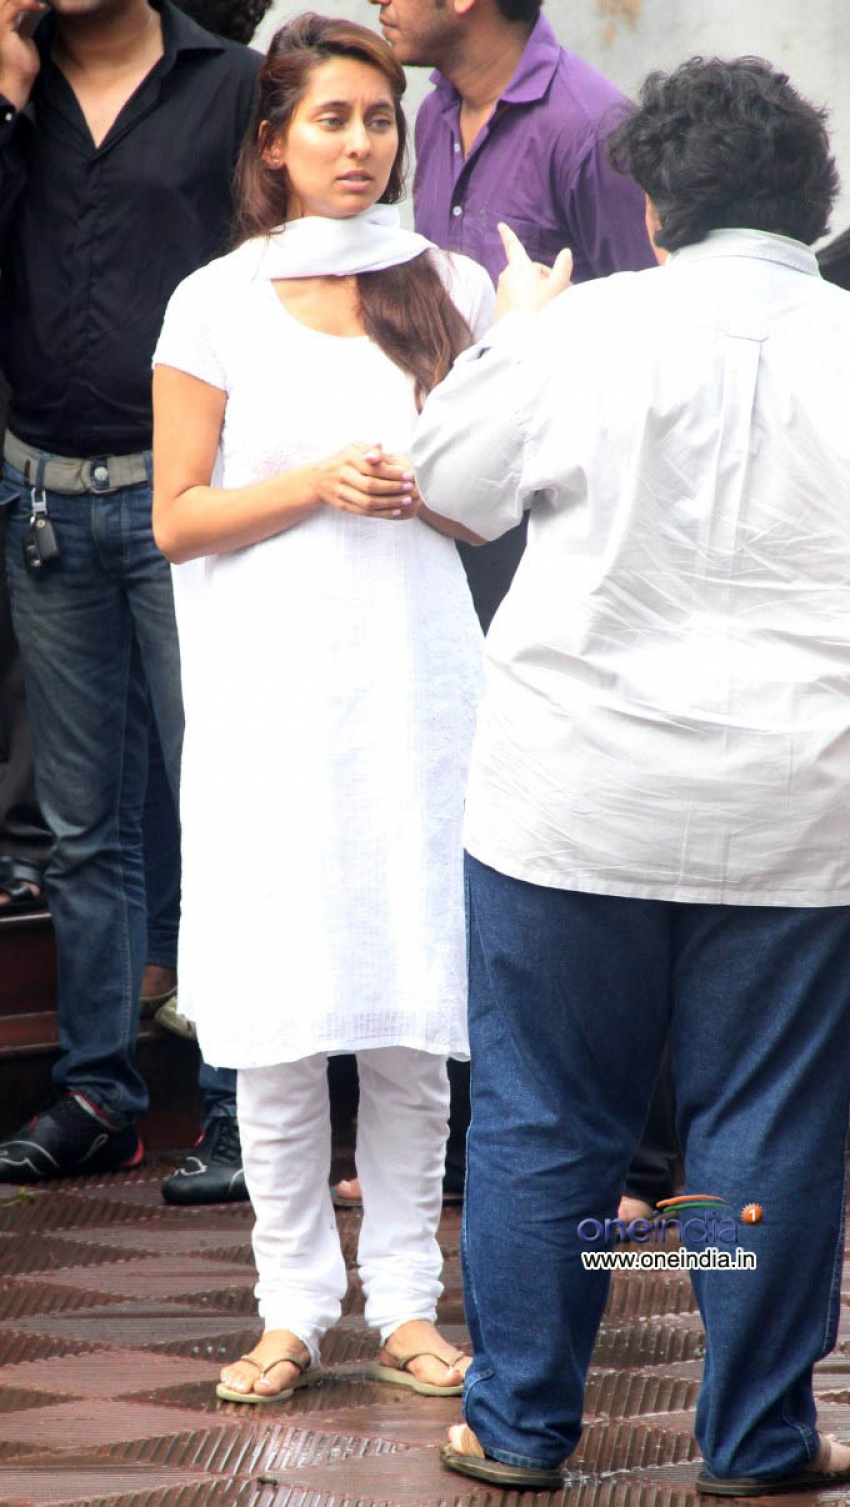 Shah Rukh Khan, Shahid, Parineeti at the funeral of Priyanka Chopra's father Photos